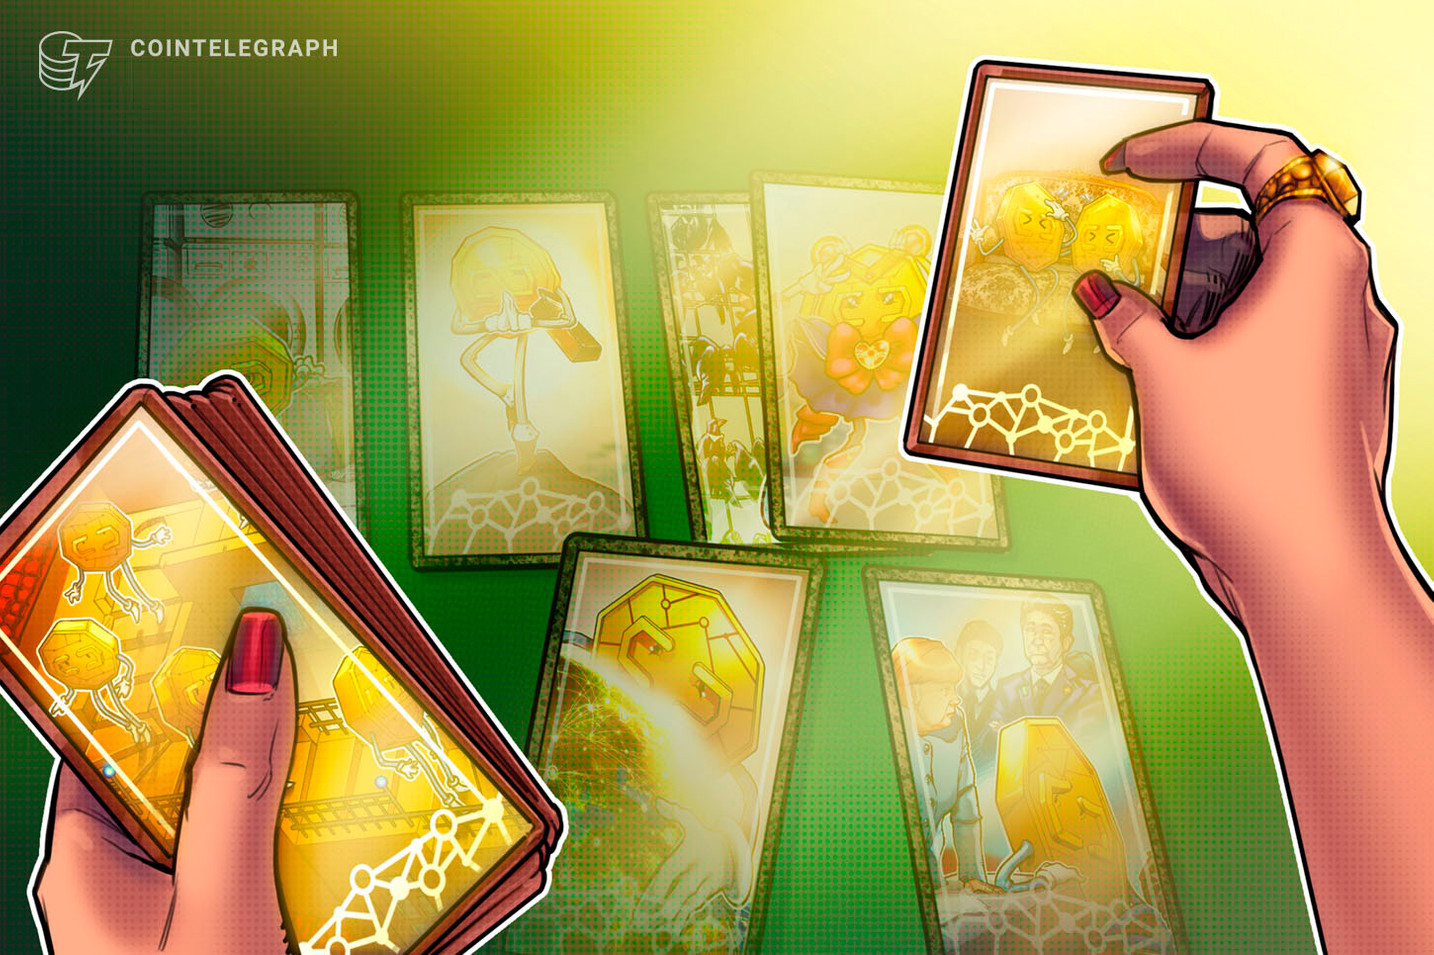 Decentralized Prediction Markets: Gambling or a Window to the Future?